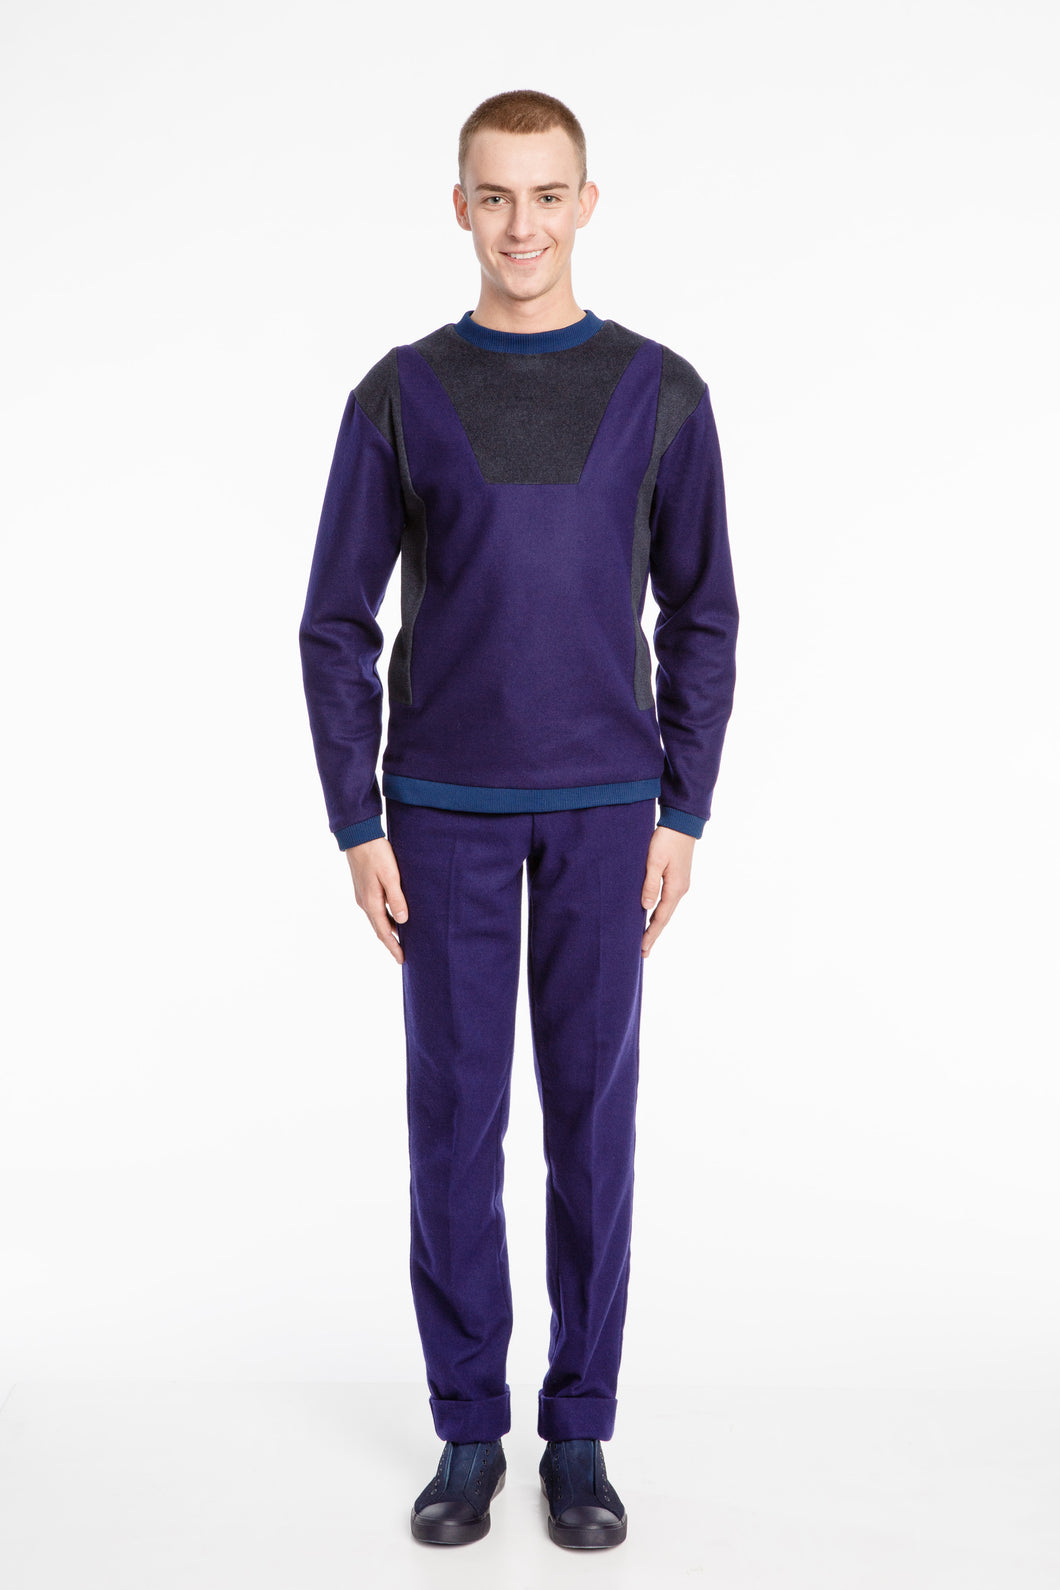 Unisex Futuristic Sweater Purple